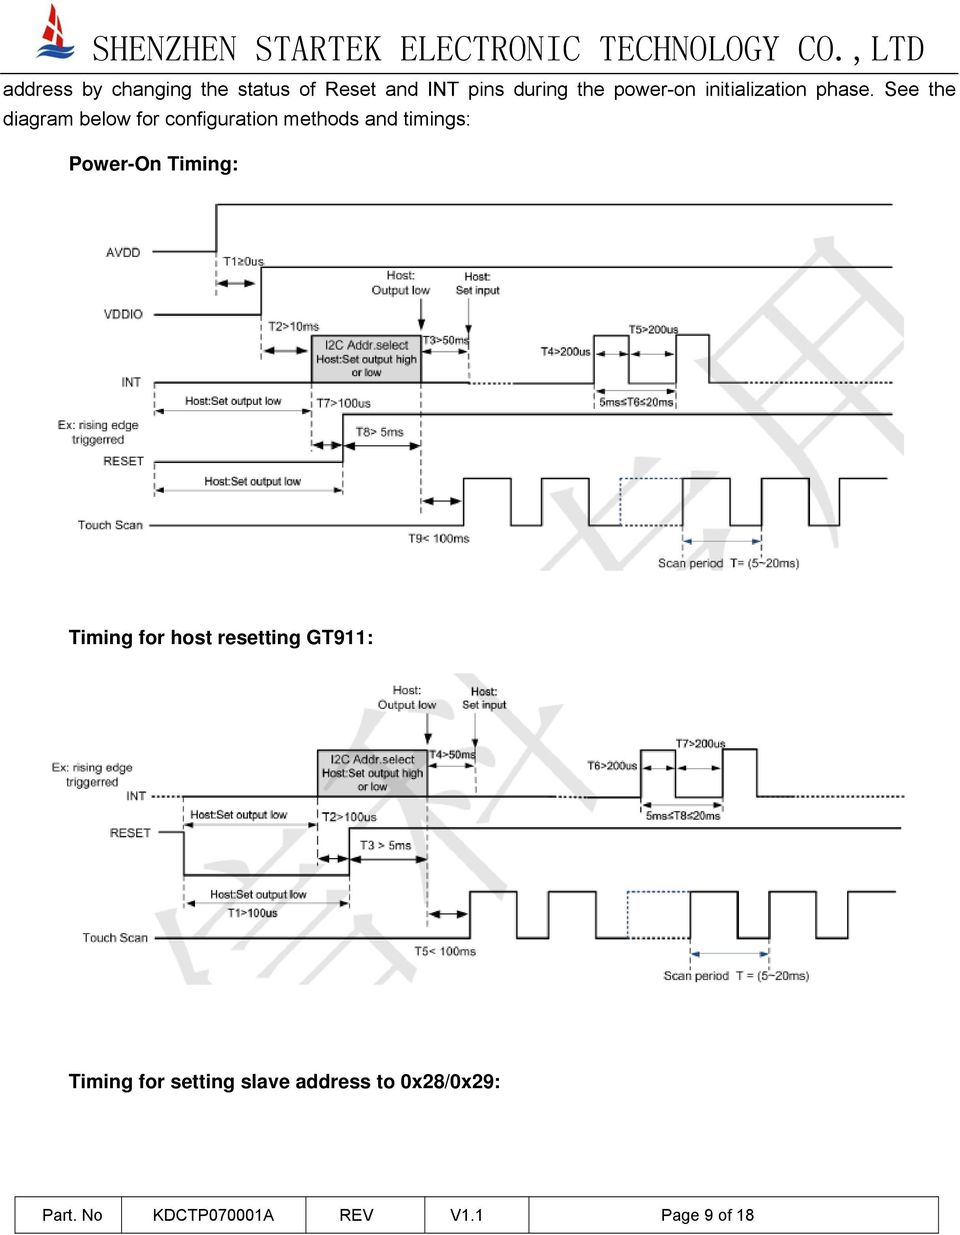 SPECIFICATION FOR CTP Module KDCTP070001A - PDF